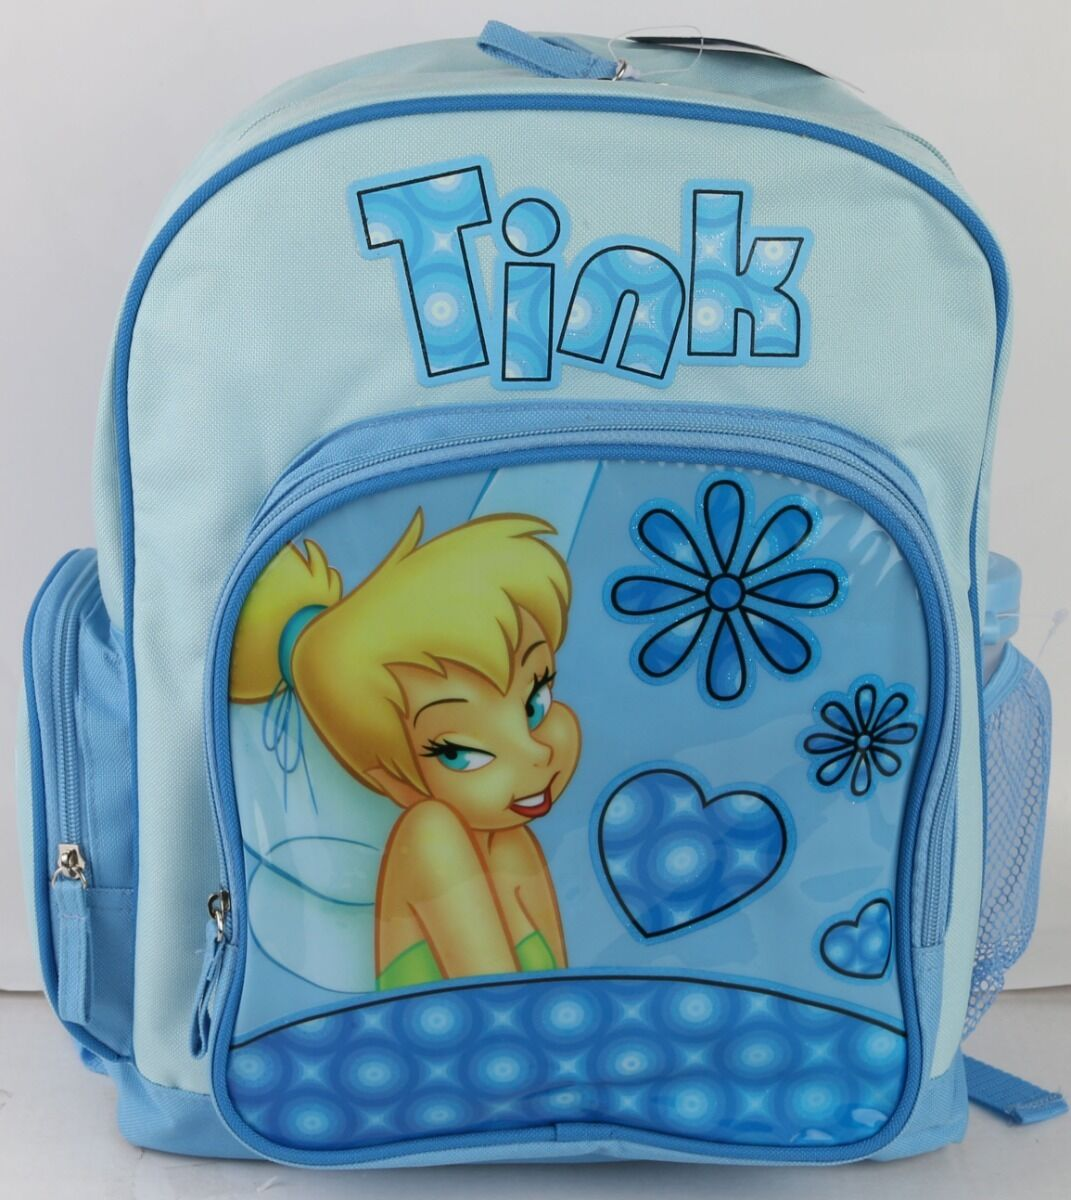 Adhyr Tinkerbell and Fairy Flying Black Backpack Zipper School Bag Travel Daypack Unisex Adult Teens Gift